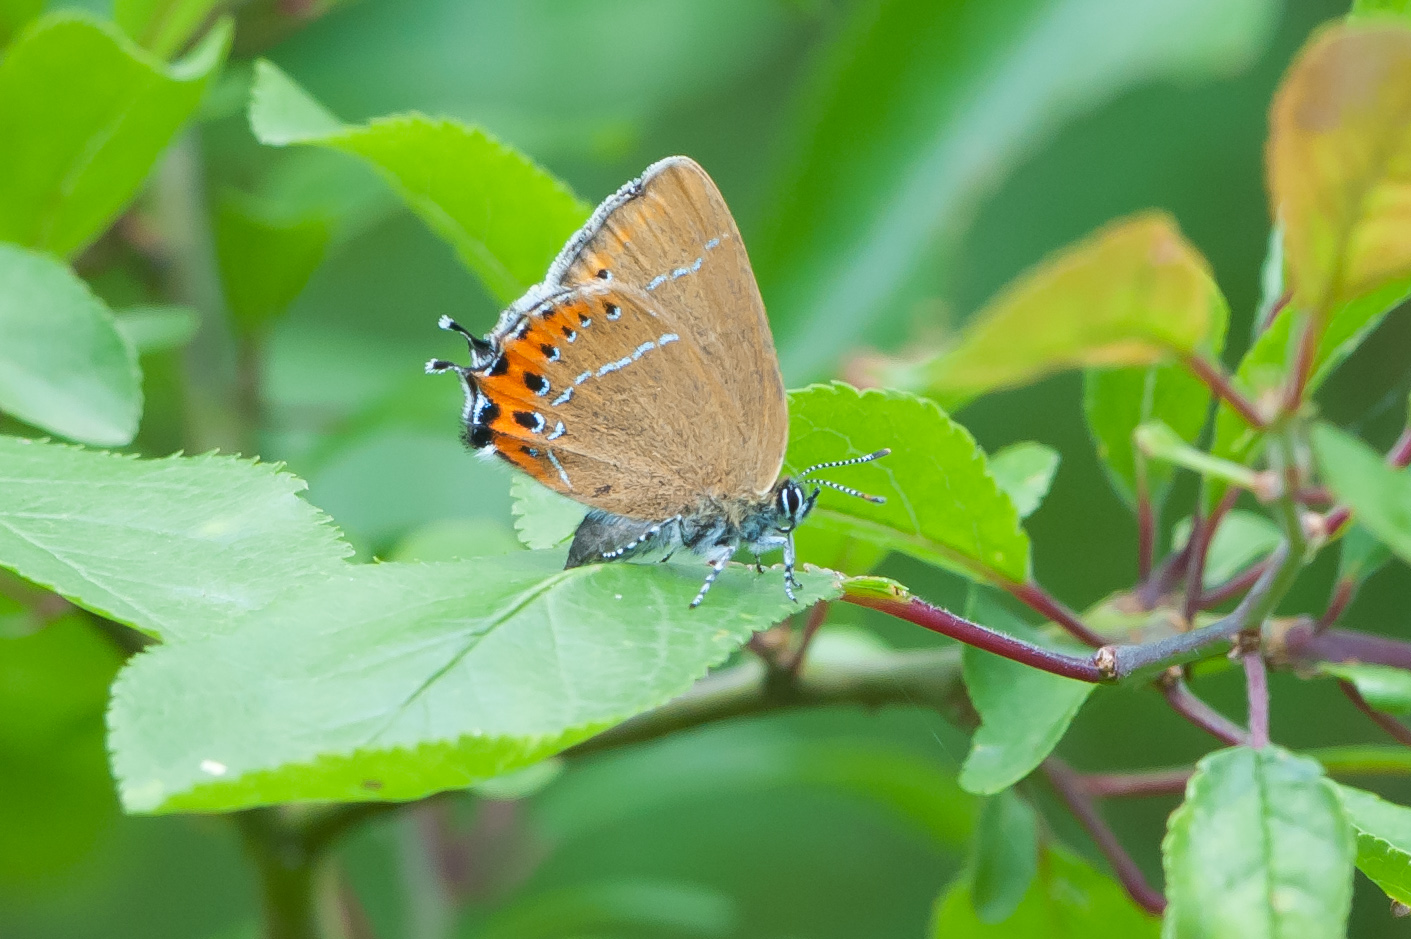 I had quite a bit of luck in obtaining my first views and photographs of black hairstreak. Two trips to Lincolnshire over one weekend in June amounting to 16 hours in total resulted in a very brief and close encounter with this beautiful butterfly.